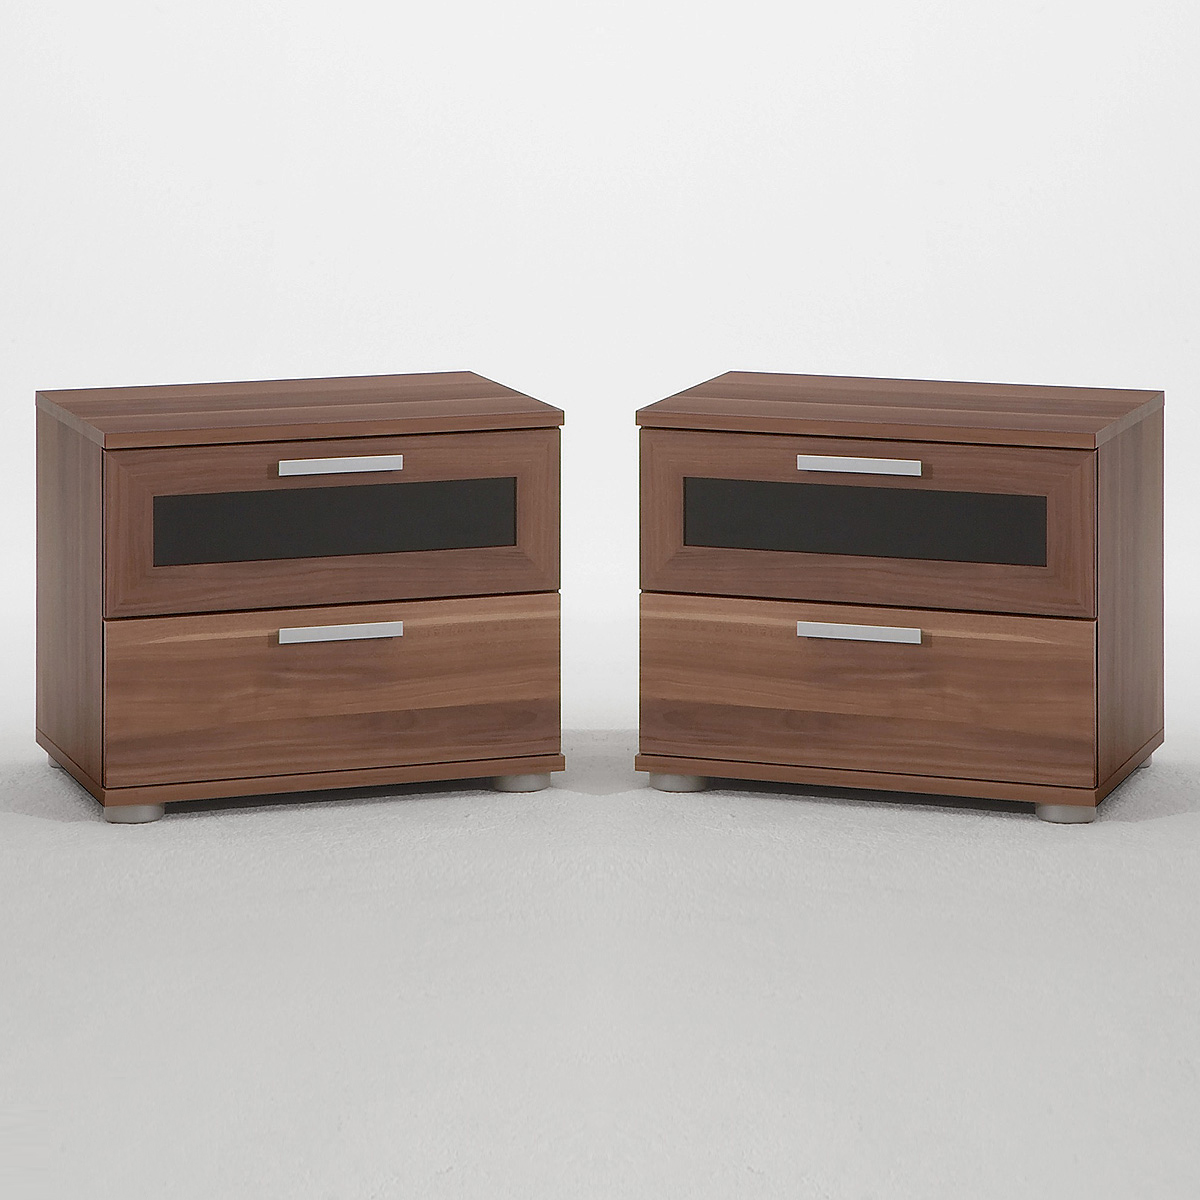 2er set nachtkonsole jack 1 nachtkommode kommode nussbaum. Black Bedroom Furniture Sets. Home Design Ideas